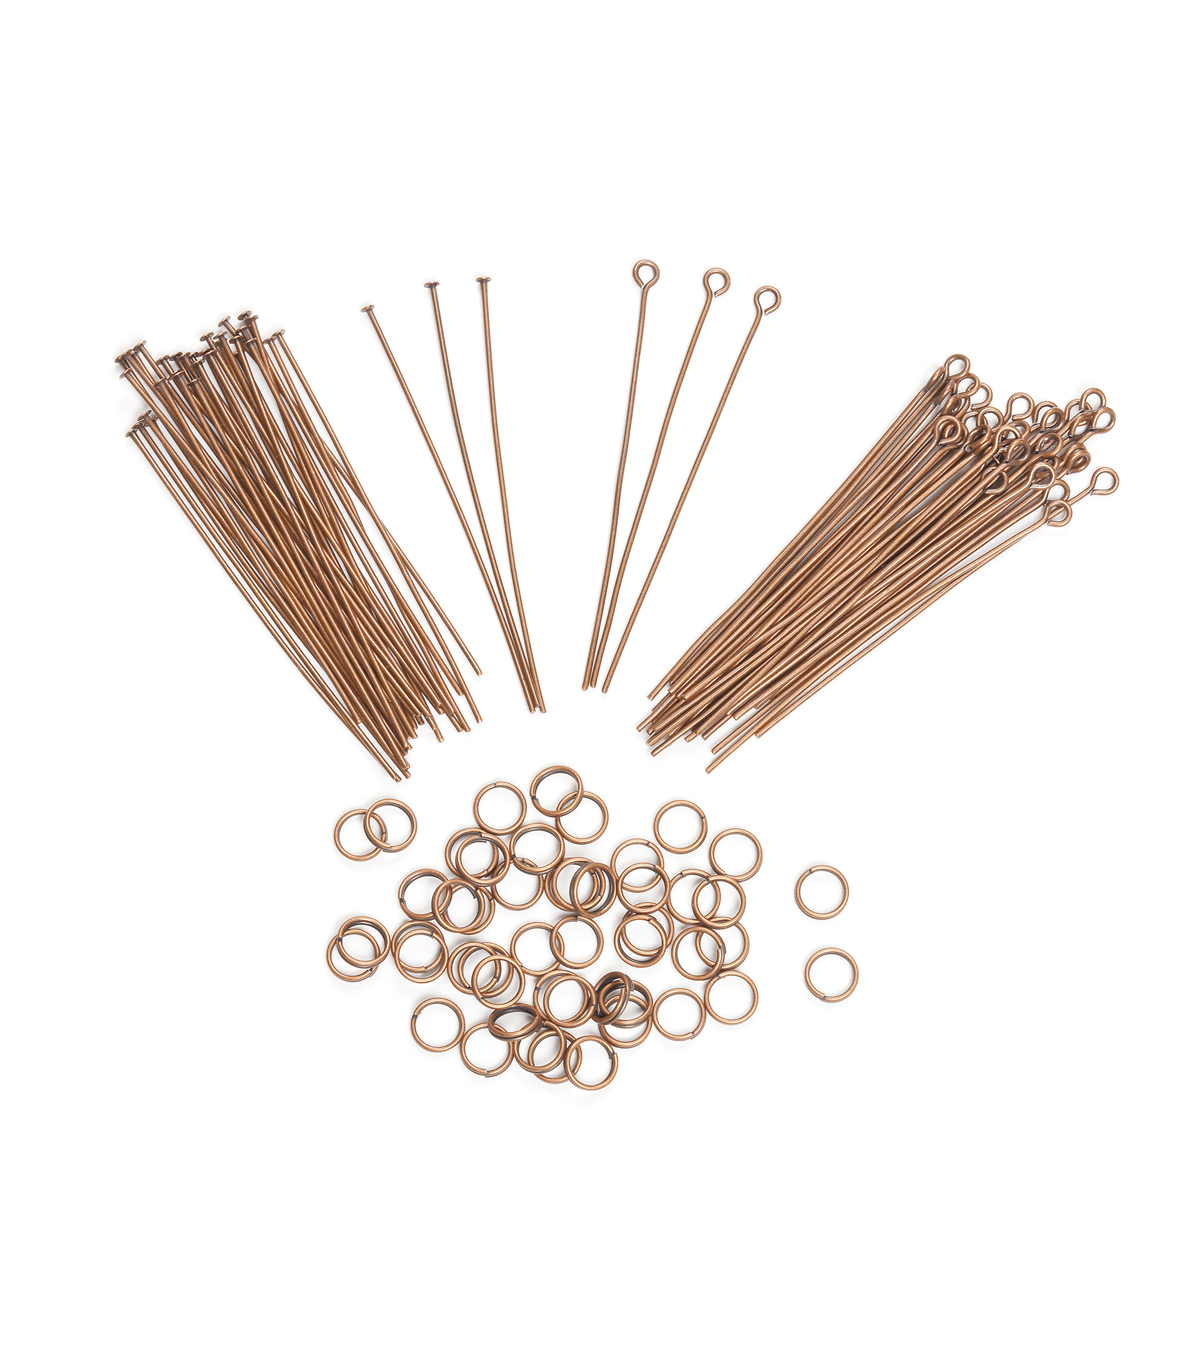 Jewelry Finding Assortment Eye pin/Headpin/Jump Ring, Ant. Copper, 122pc.